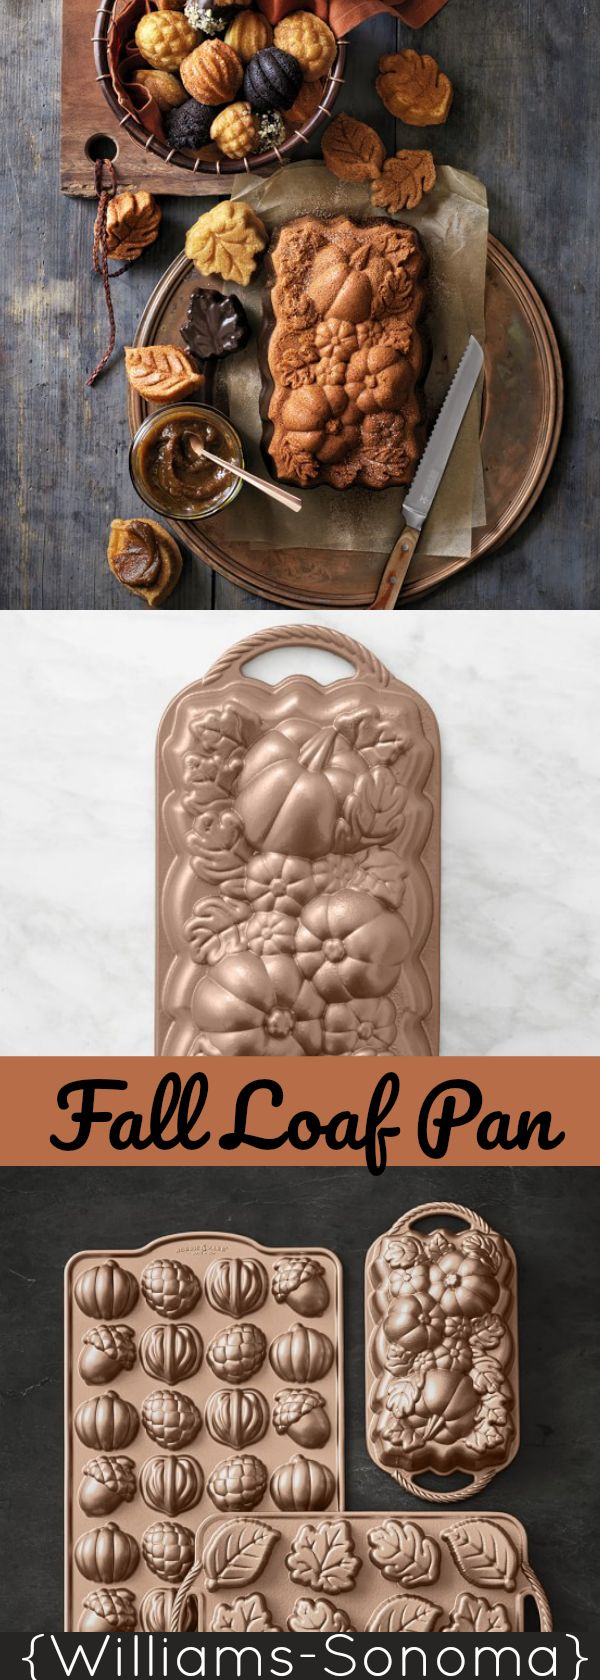 Nordic Ware Fall Loaf Pan and muffin tins. Would be super cute for pumpkin bread and gingerbread! {Williams-Sonoma} #fallloafpan #loafpan #autumn #fallbaking #pumpkinbread #gingerbread